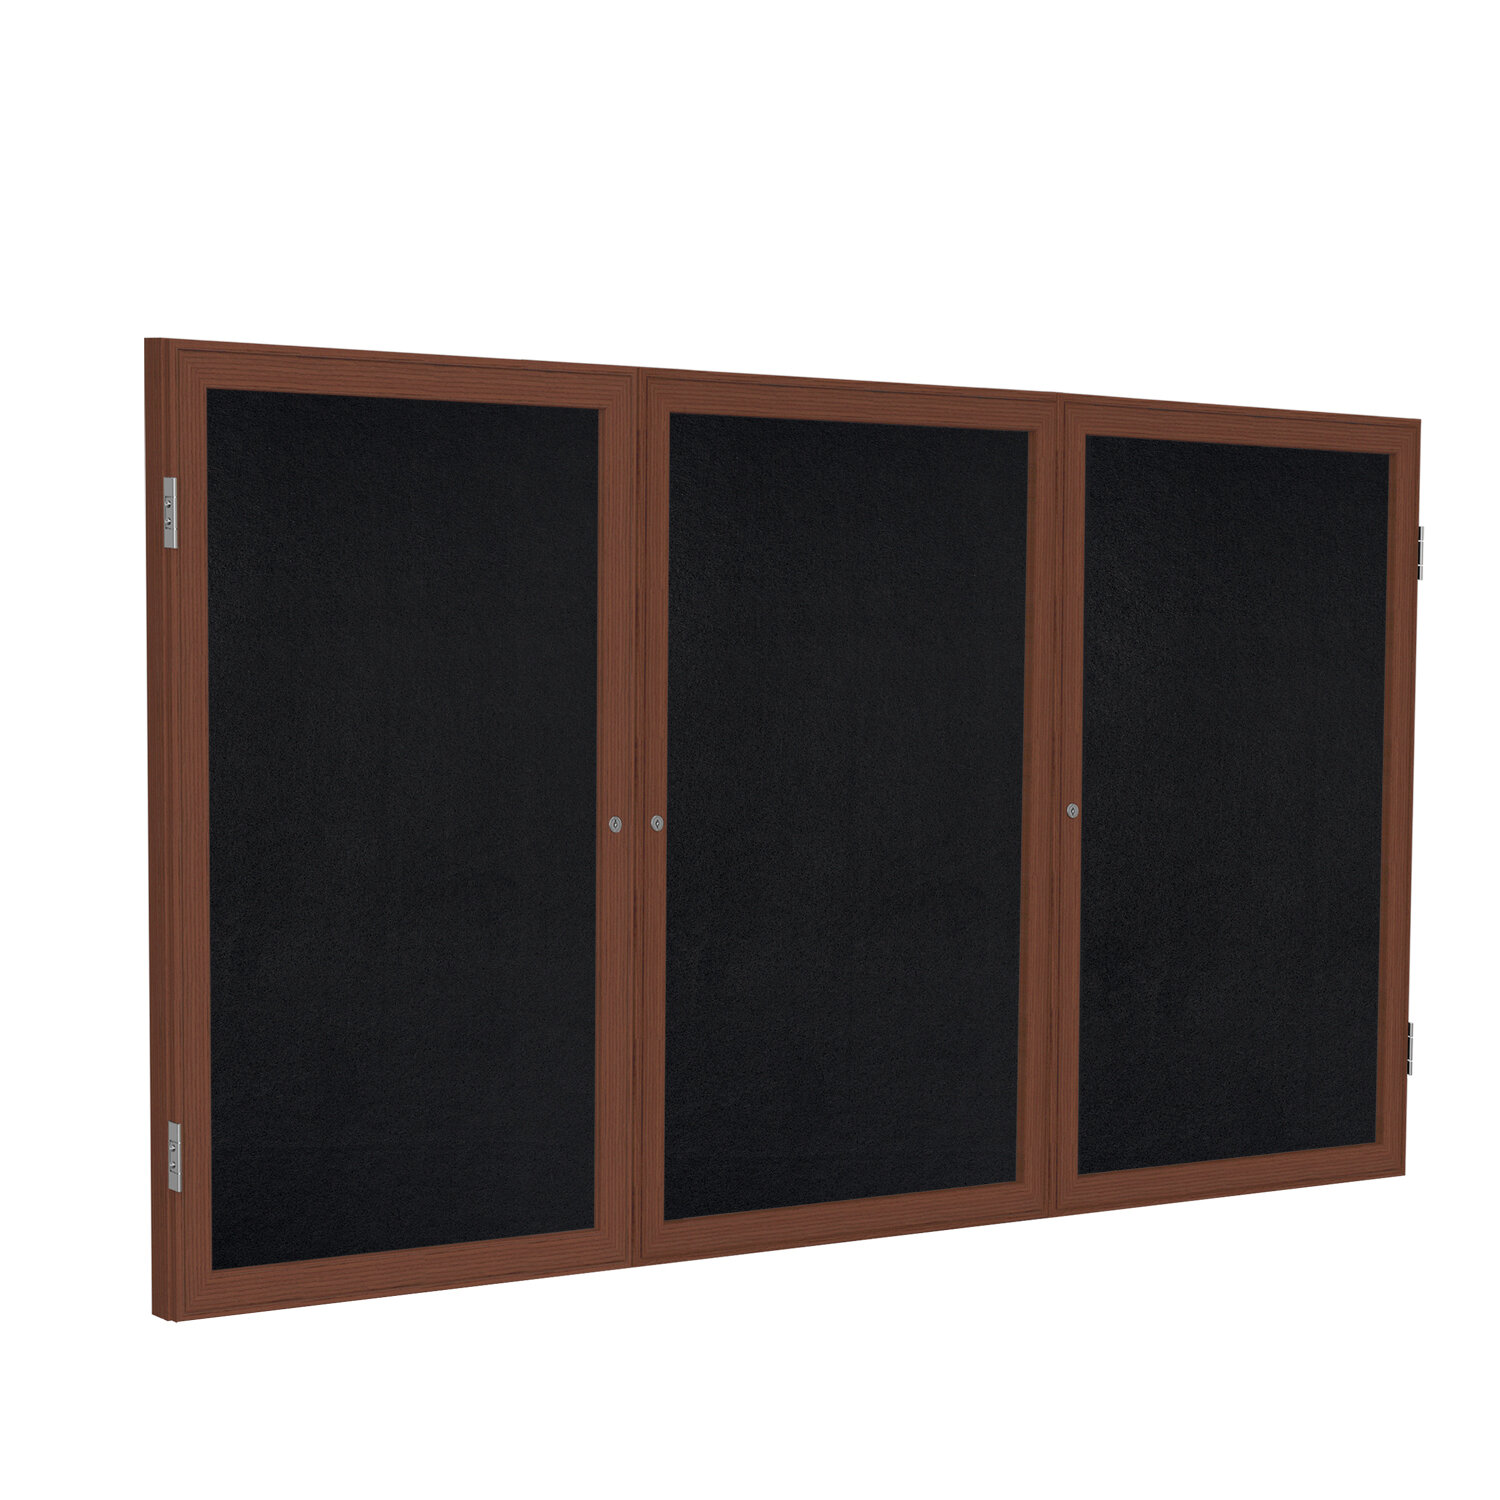 Ghent 3 Door Enclosed Recycled Rubber Bulletin Board With Wood Frame